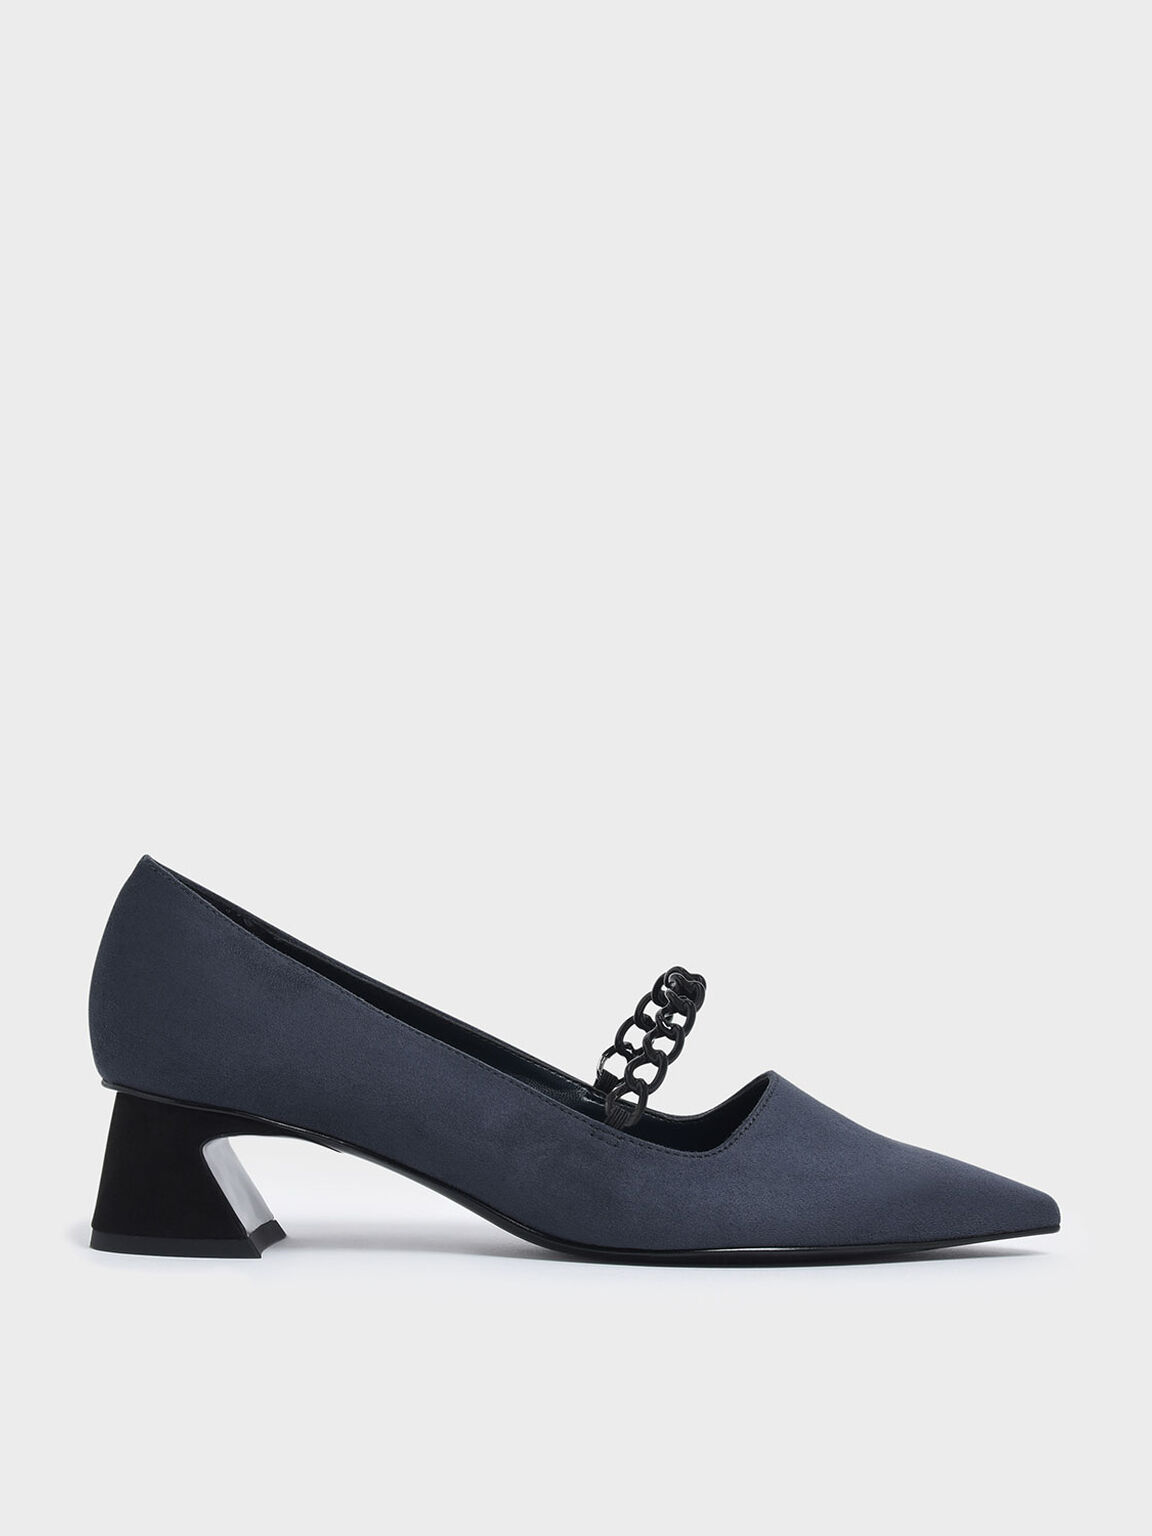 Chain Strap Curved Block Heel Mary Jane Pumps, Dark Blue, hi-res